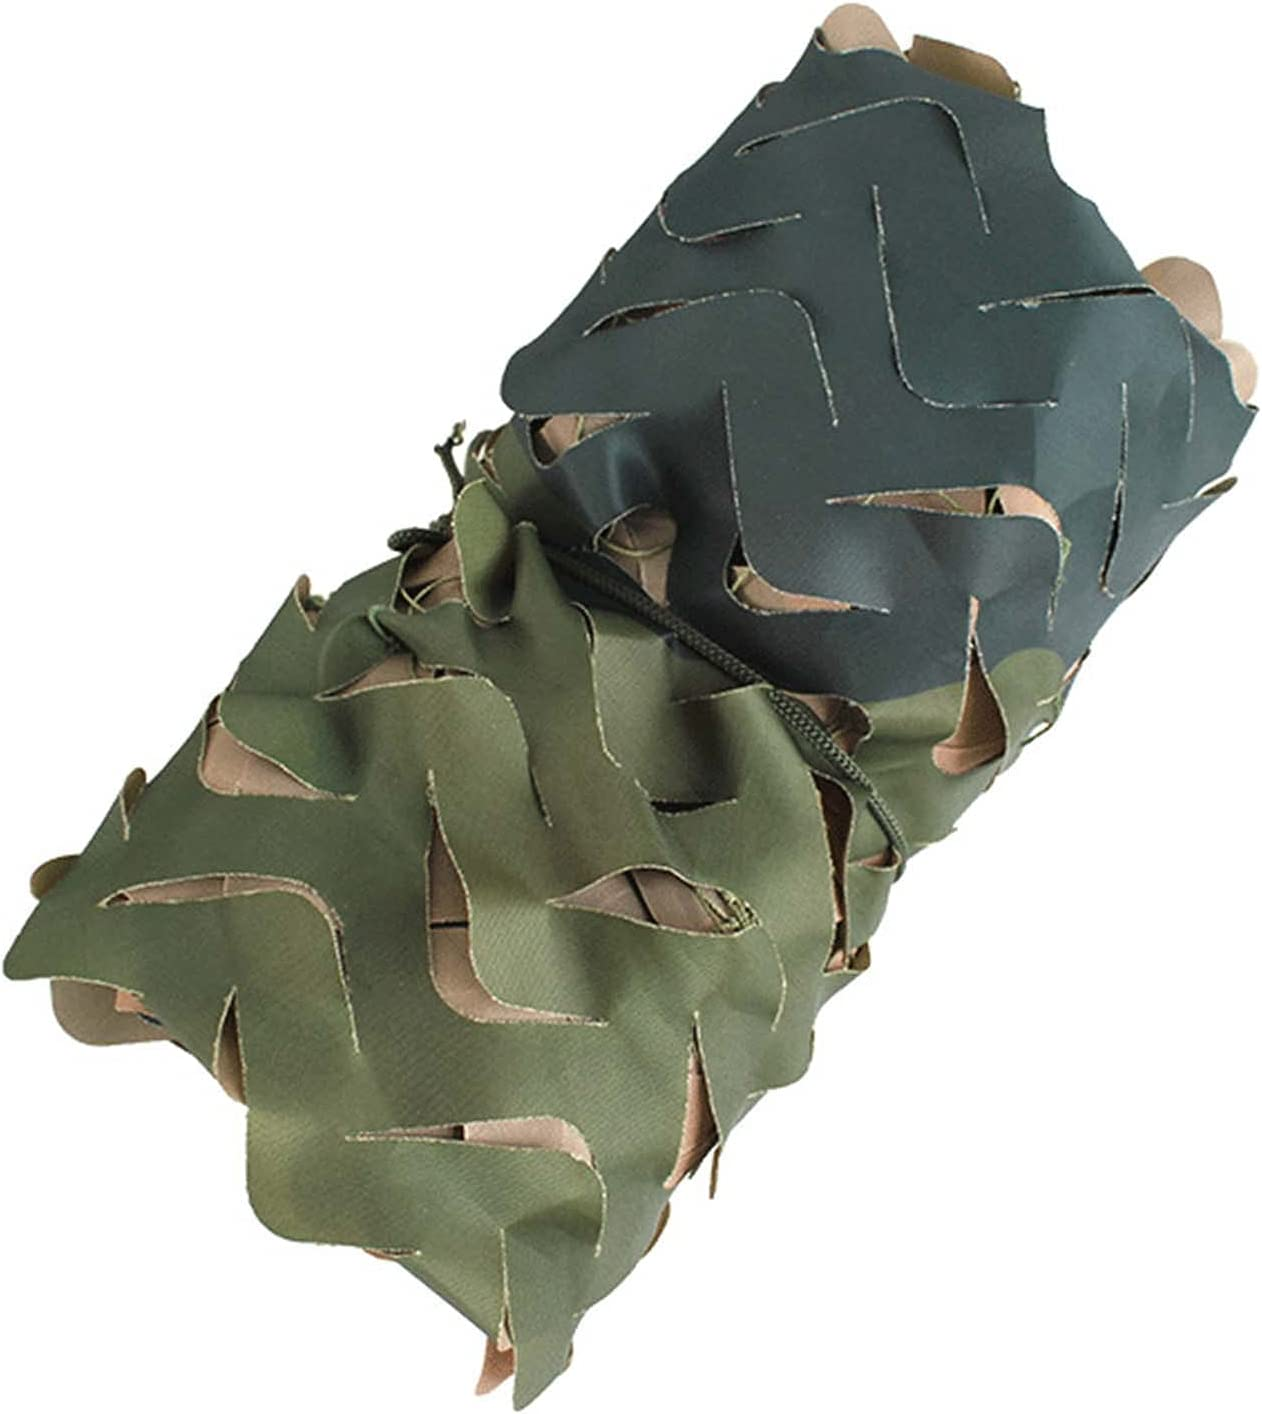 XKD Max 45% OFF Heavy-Duty Attention brand Woodland Camo Netting Army Shootin Blinds Outdoor